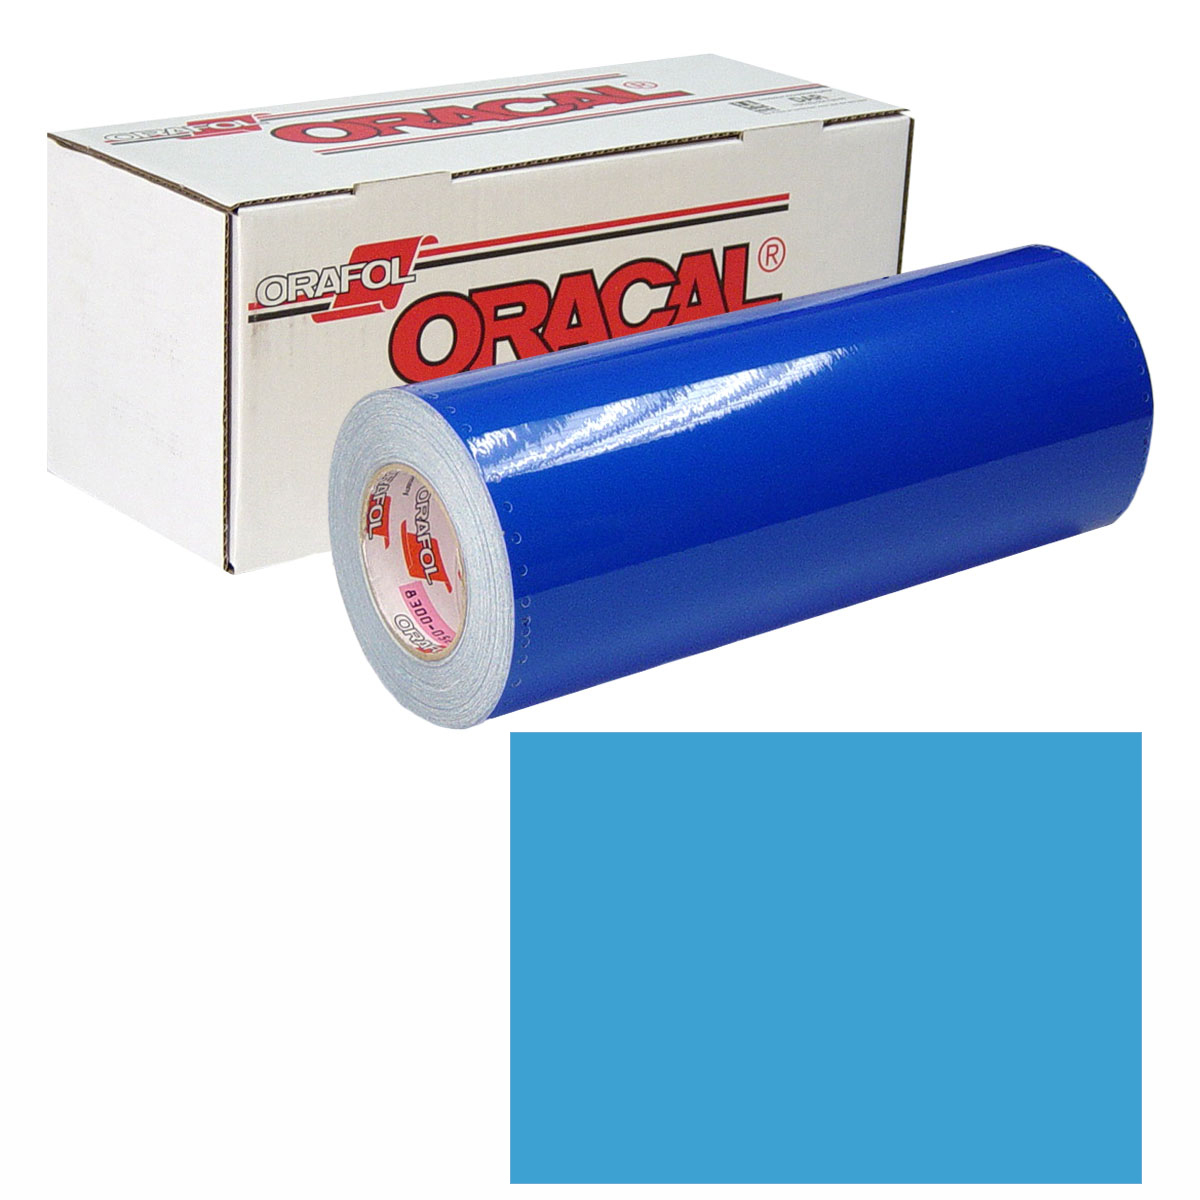 ORACAL 631 Unp 48in X 10yd 056 Ice Blue